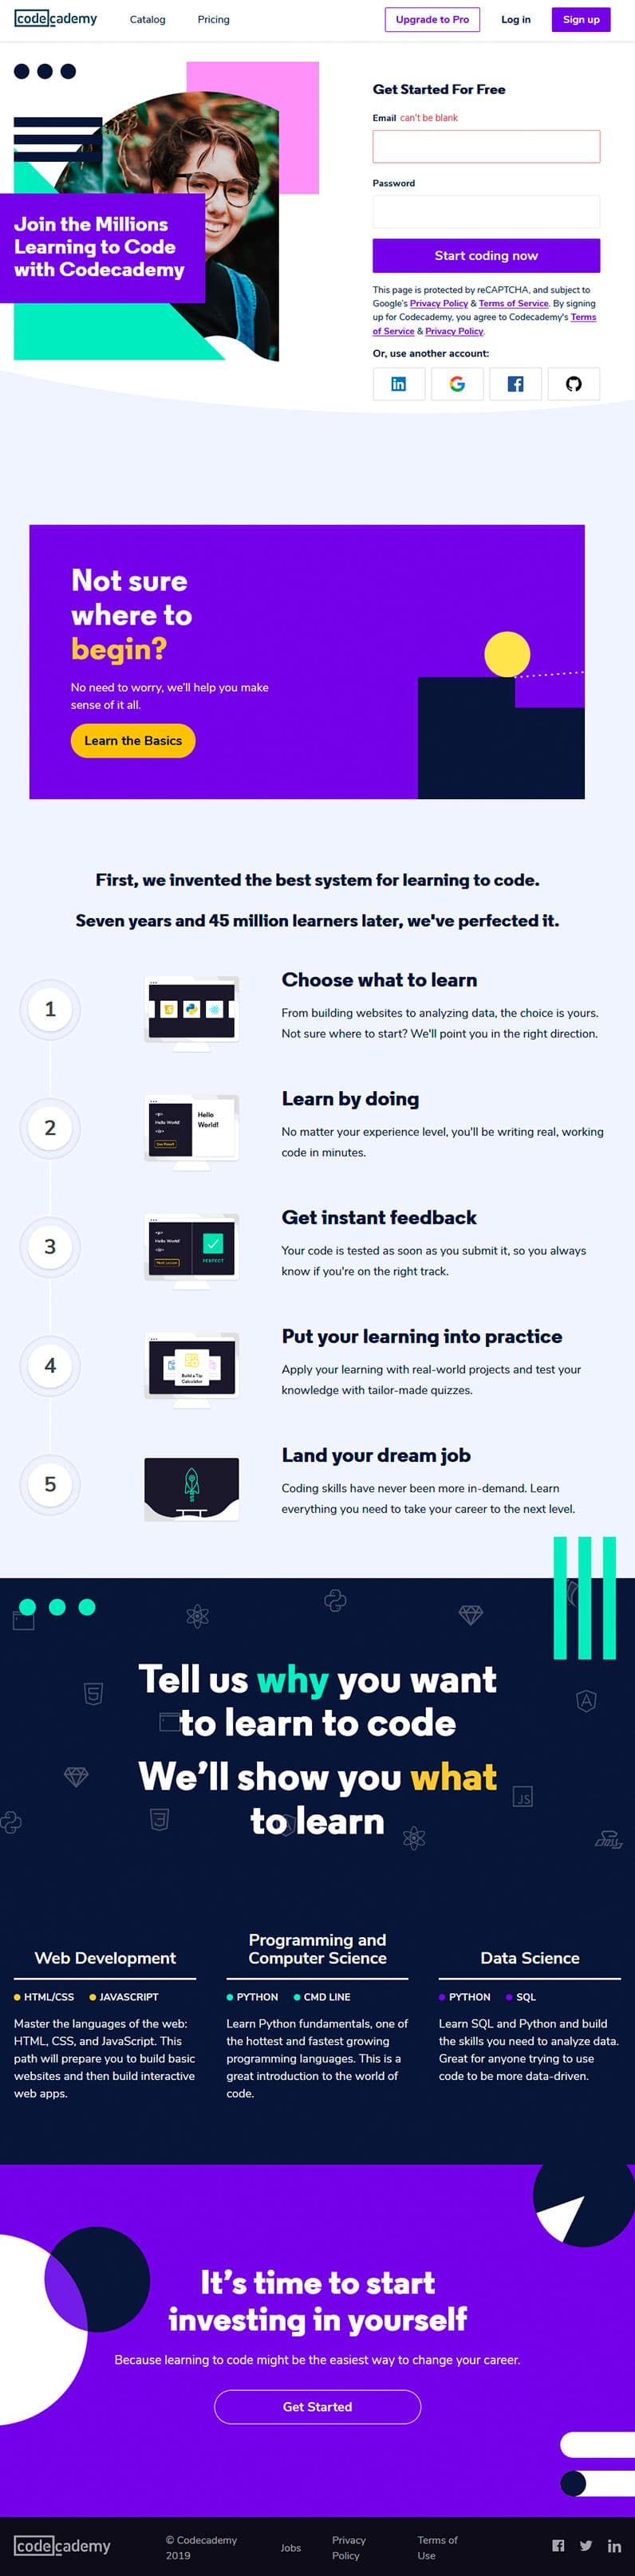 codecademy website screenshot